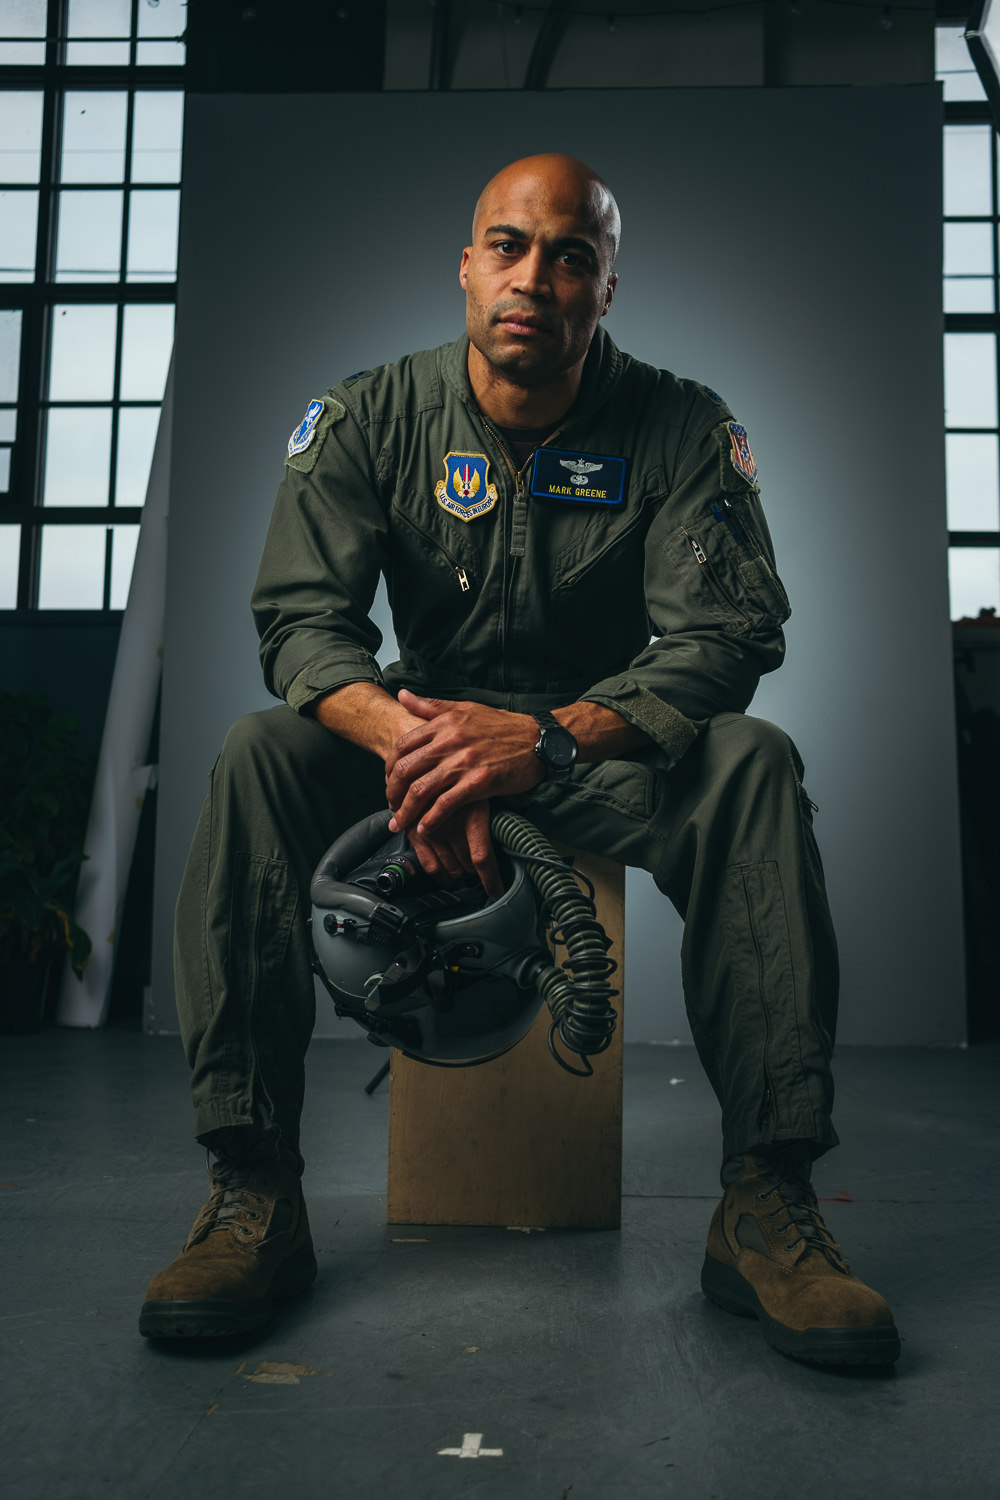 Dramatic in-studio portrait of an active US Air force pilot